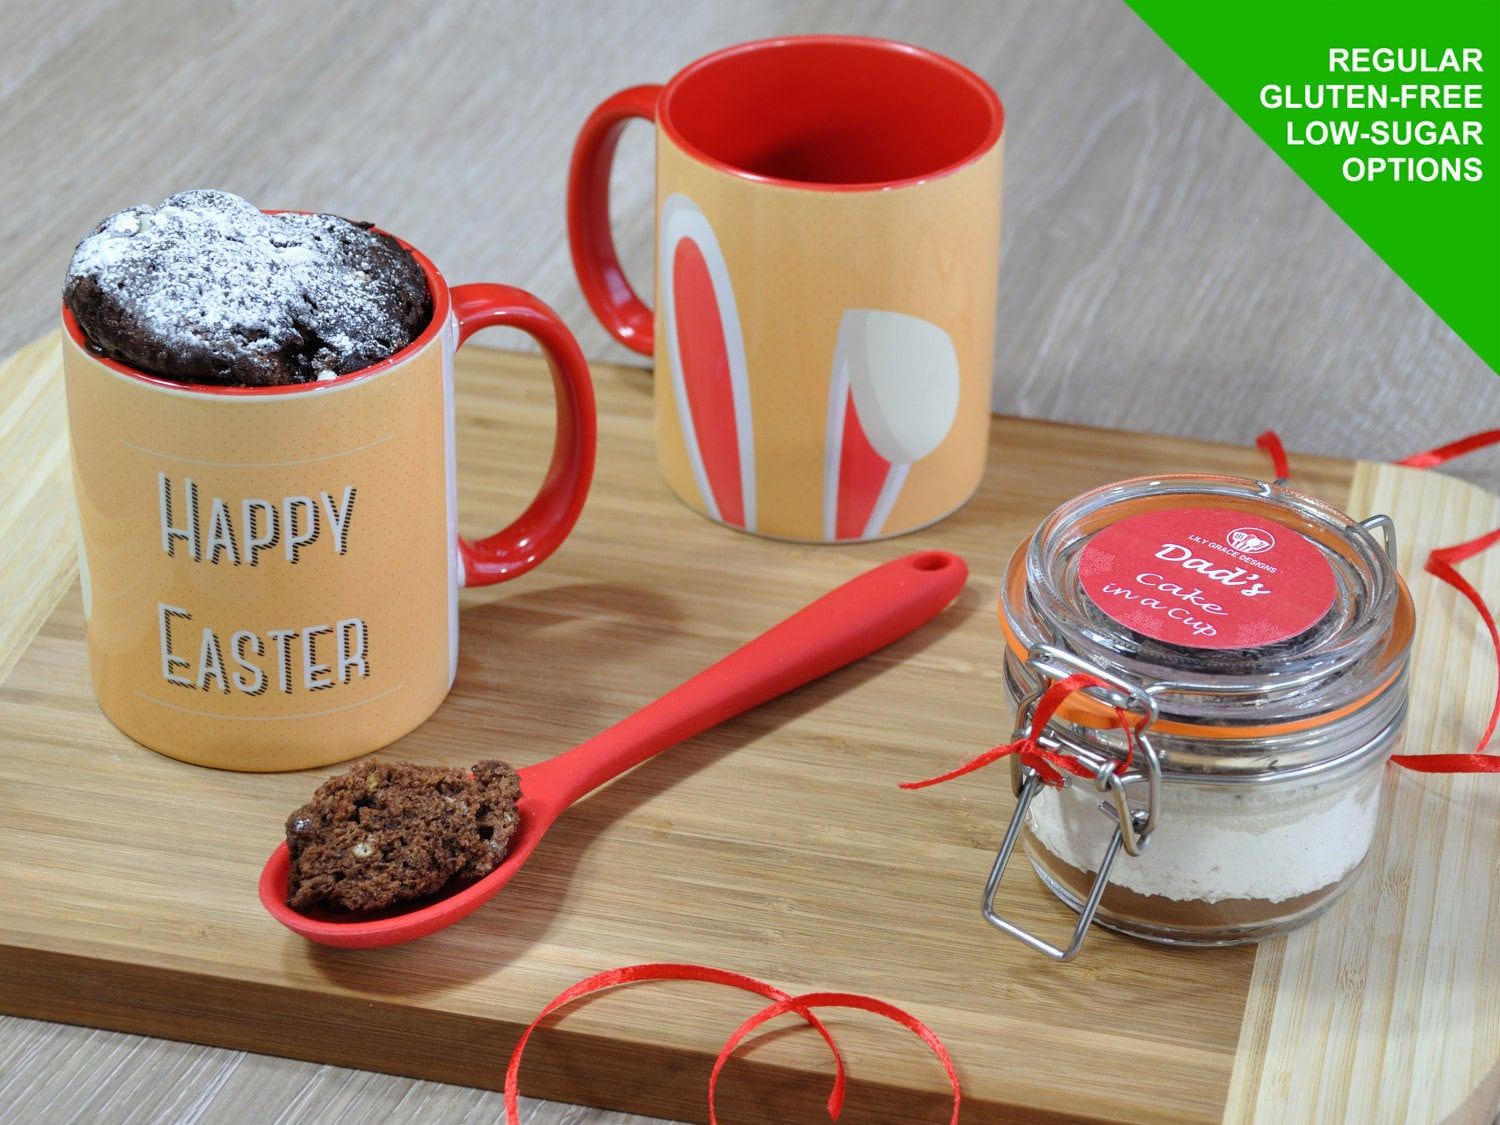 Easter egg easter gifts personalised easter gluten free easter easter egg easter gifts personalised easter gluten free easter for her easter bunny easter cake easter treat easter mug cake kit negle Gallery